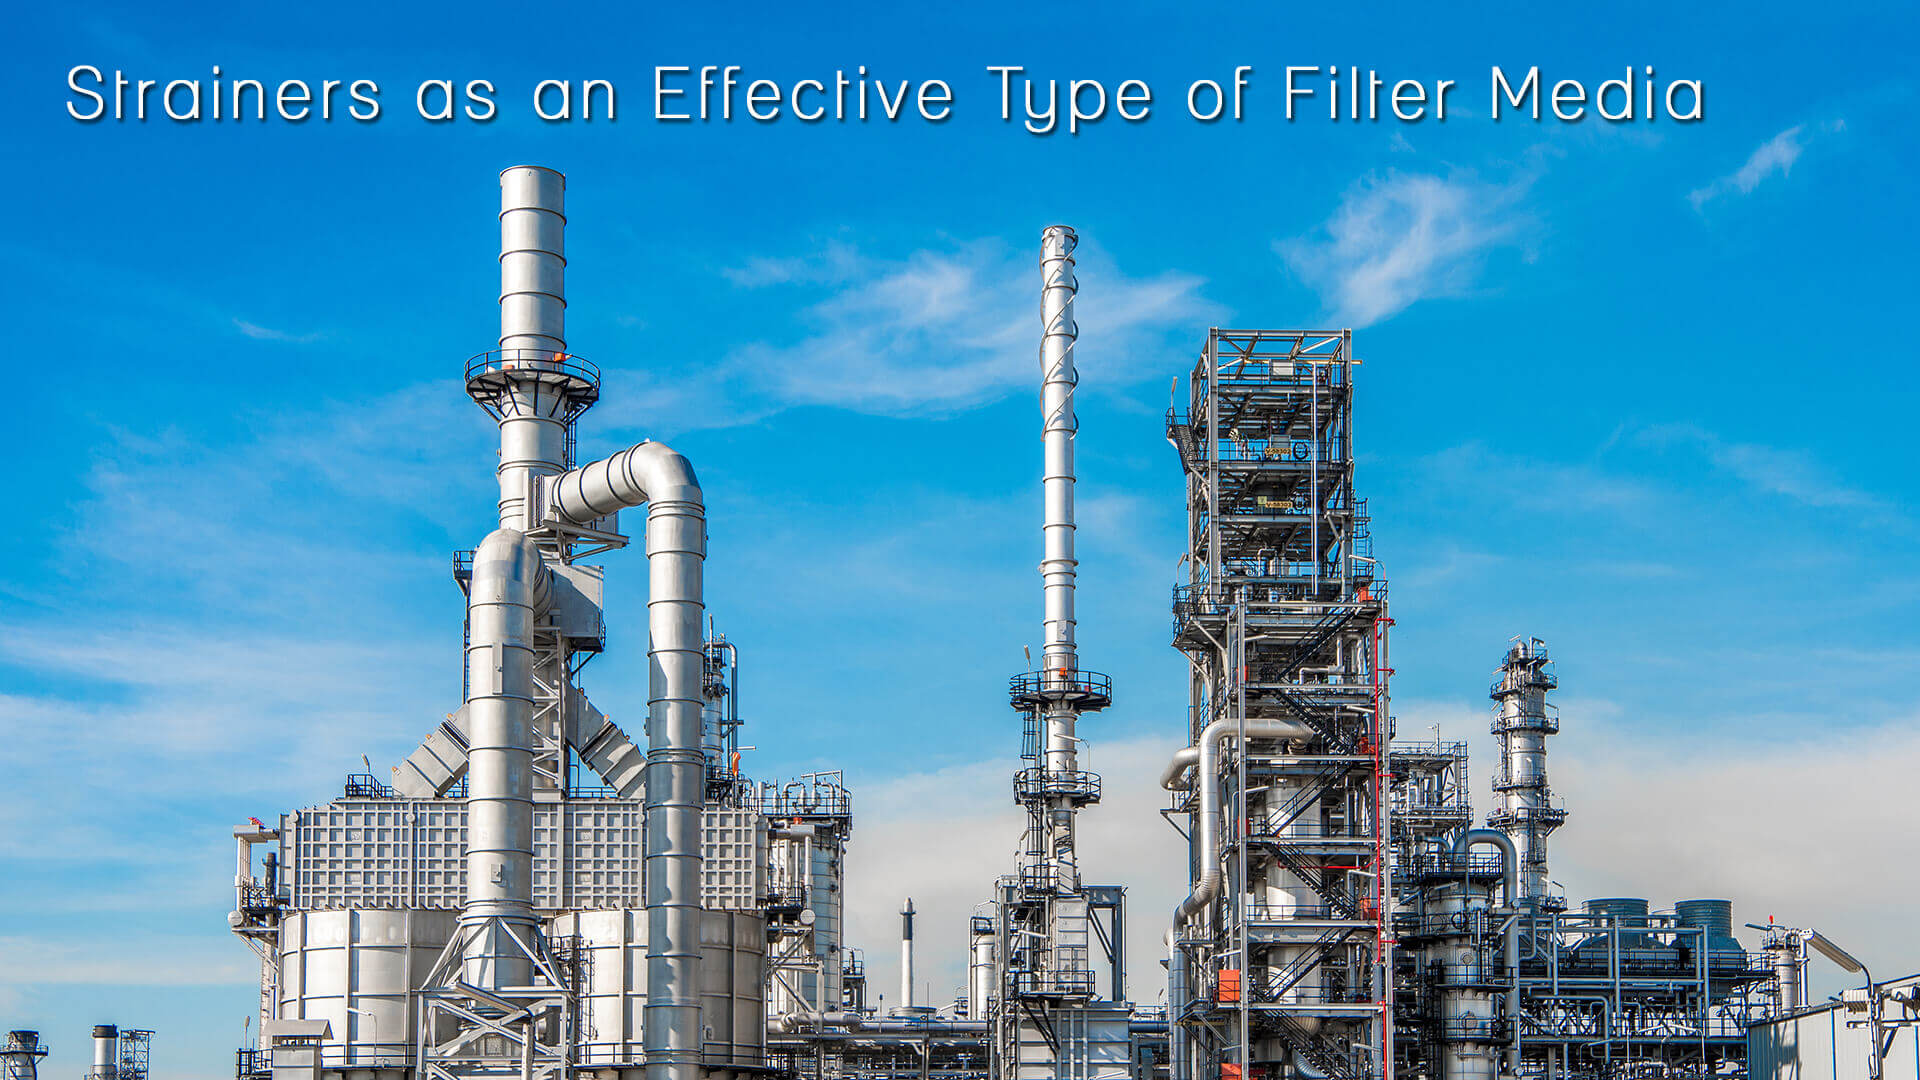 Strainers as an Effective Type of Filter Media